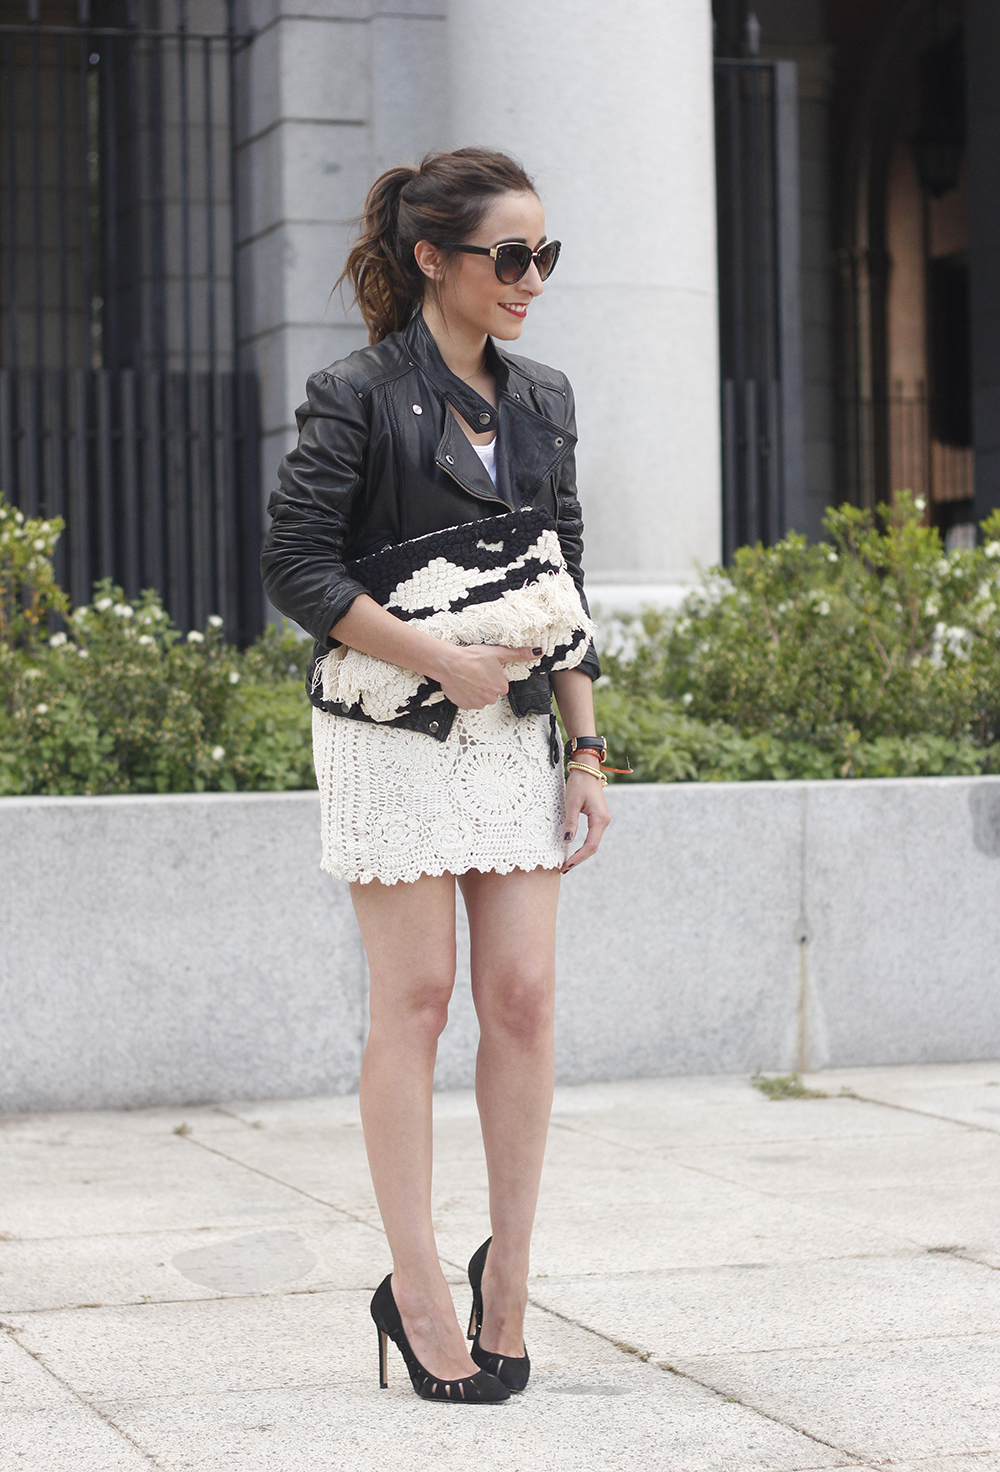 crochet skirt leather jacket black heels sunnies spring outfit style17